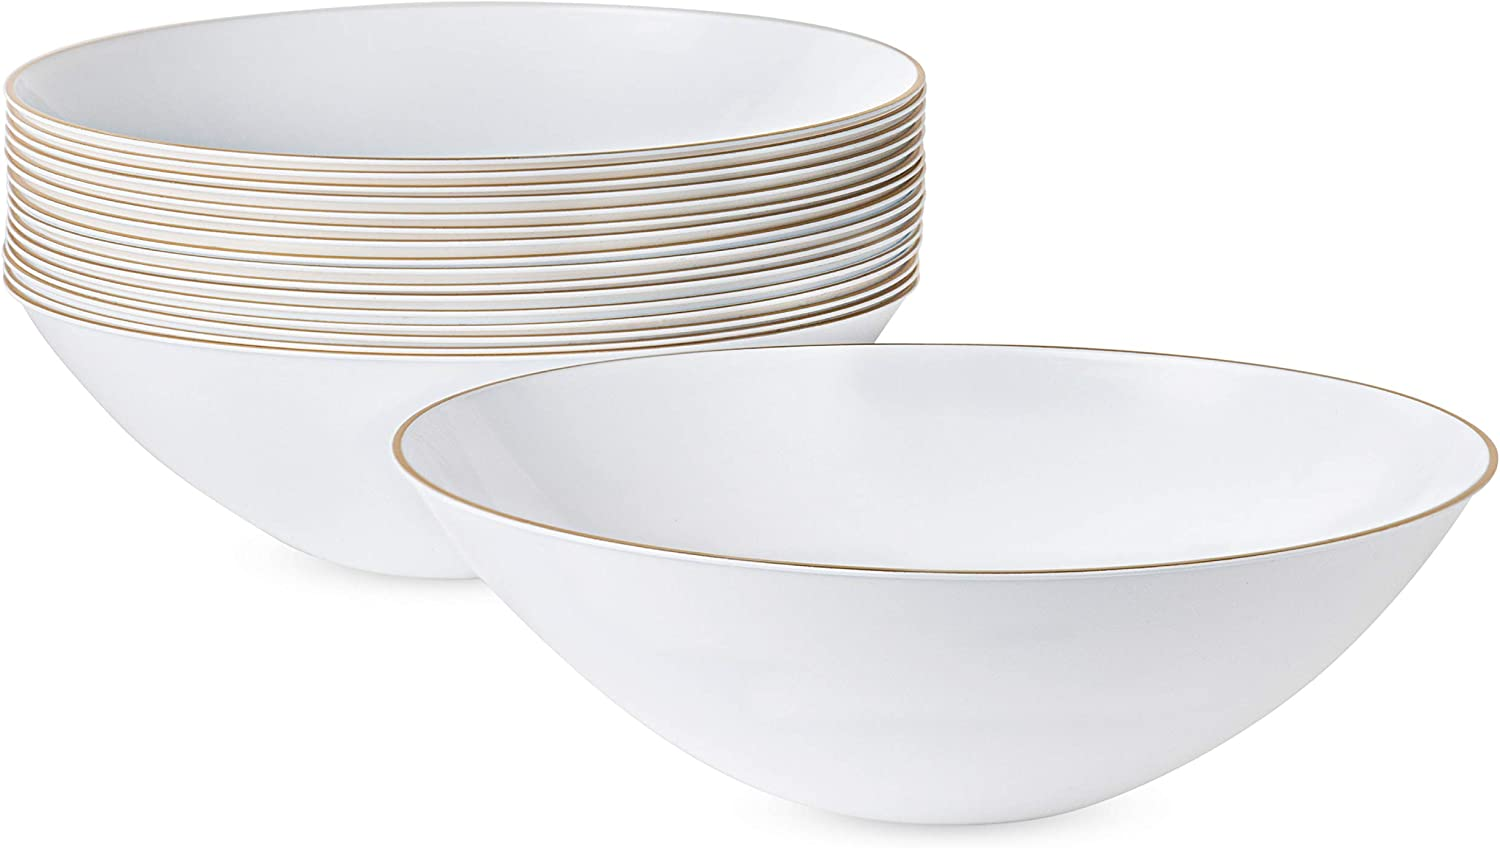 White Plastic Organic Party Soup bowls With Silver Rim Premium heavyweight Elegant Disposable Tableware Dishes 16 OZ 10 Count